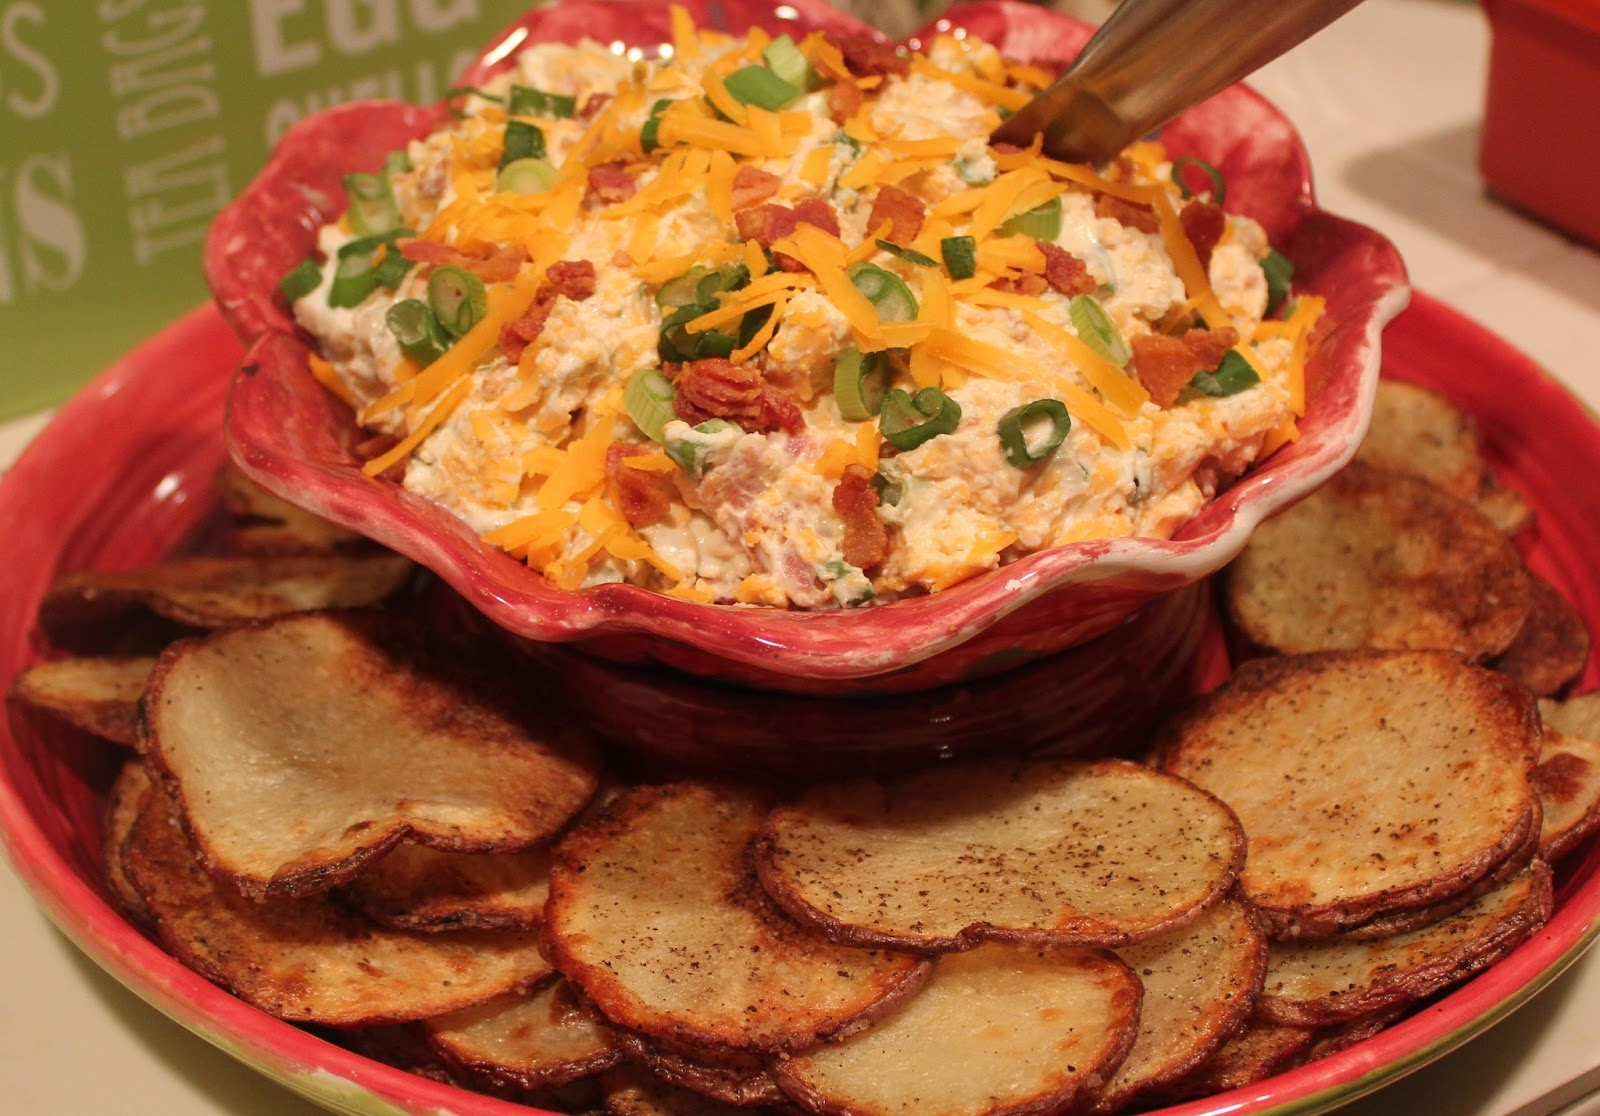 Sisters Luv 2 Cook: Loaded Baked Potato Dip with Homemade Chips